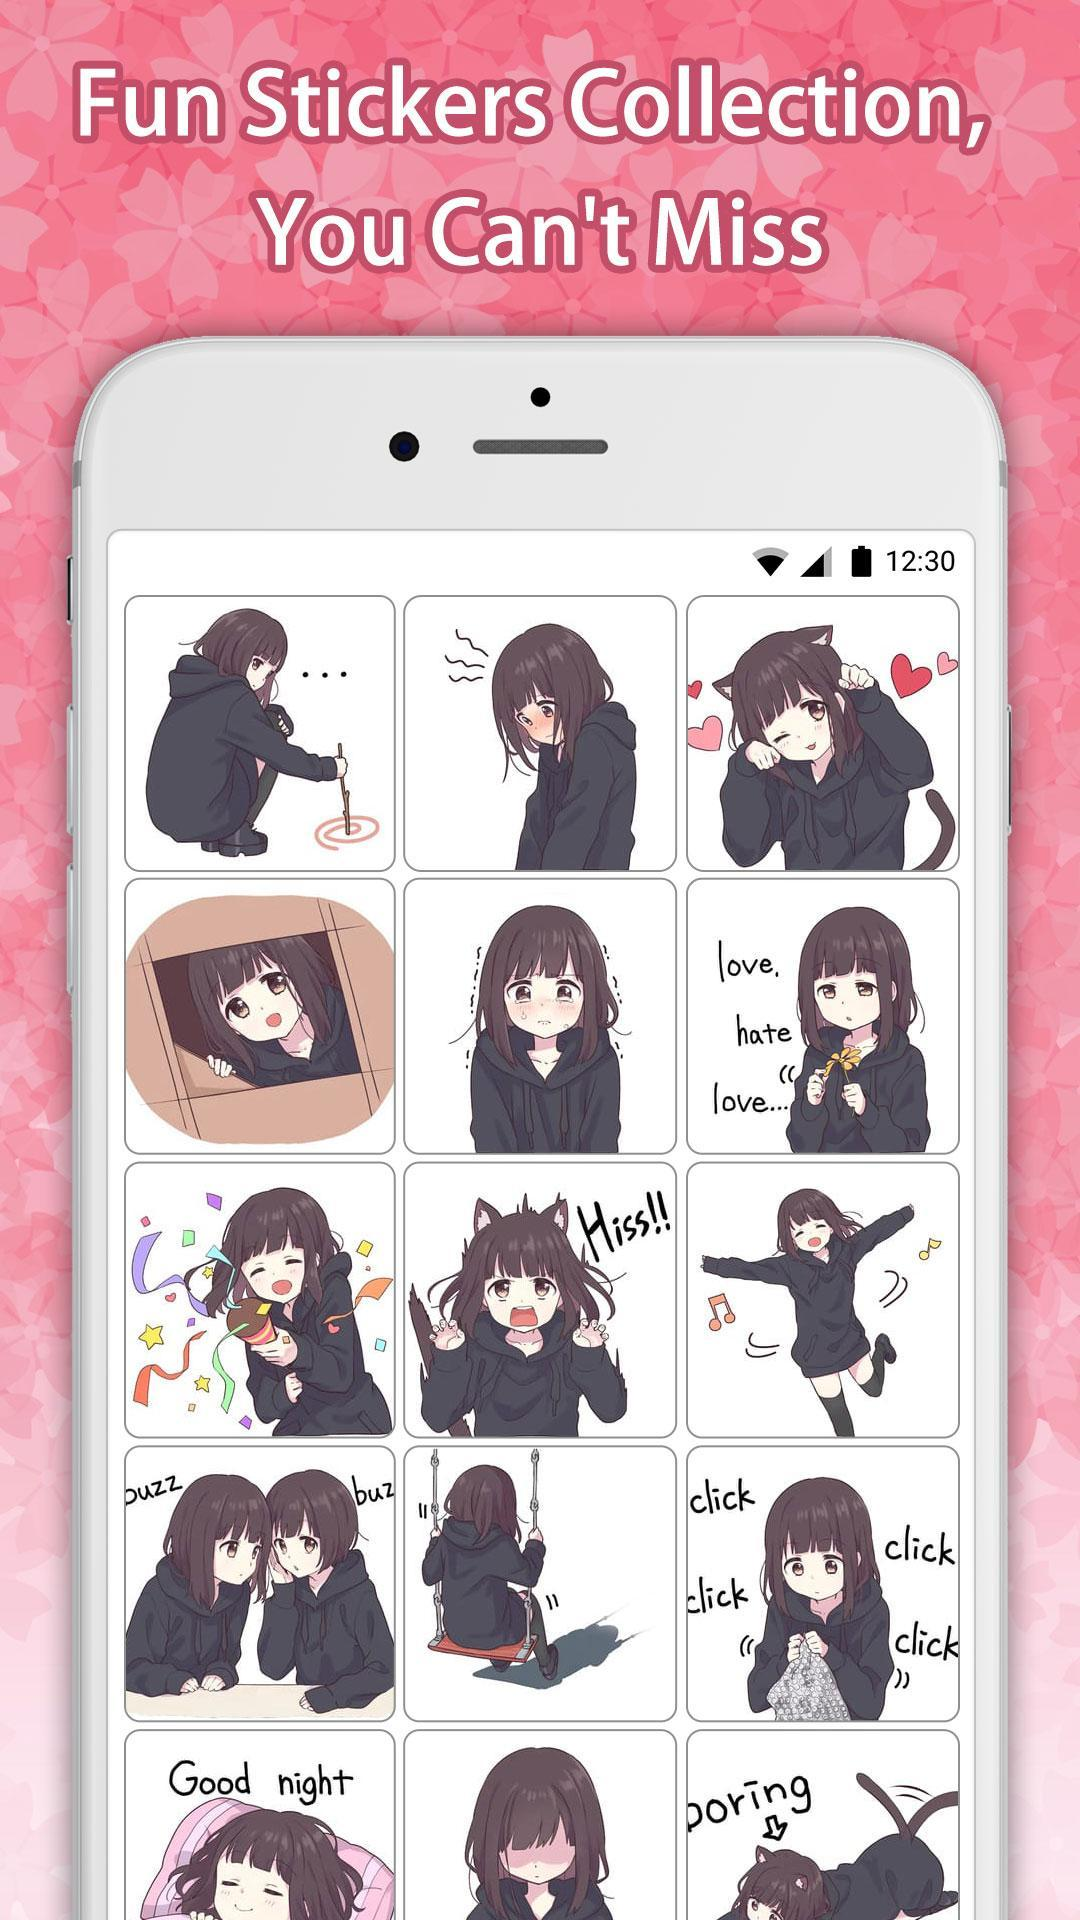 Cute Anime Girl 8 - Sticker Packs For WhatsApp for Android - APK